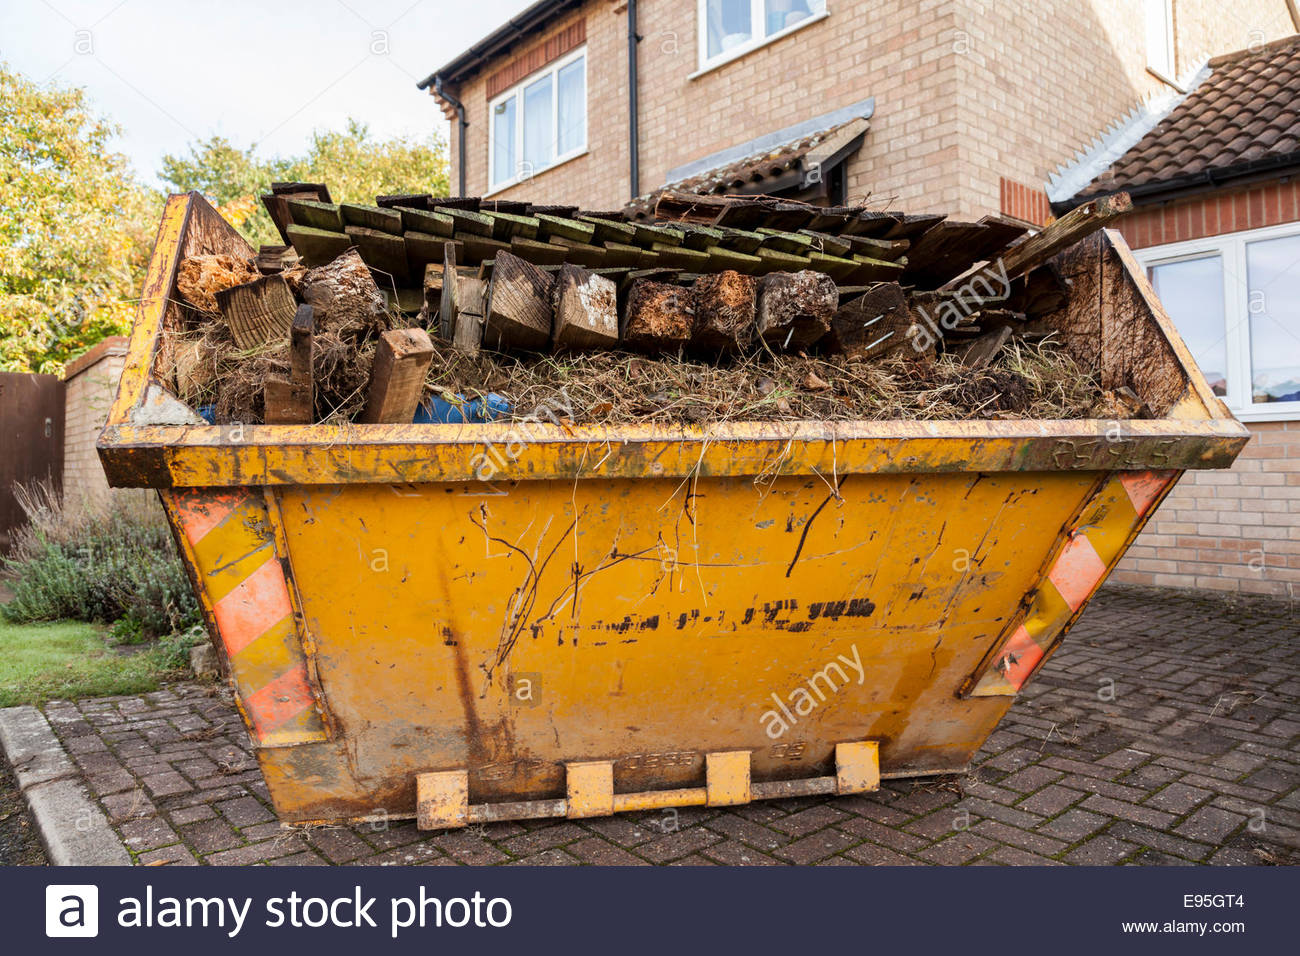 Large skip full of garden waste and fencing - Stock Image